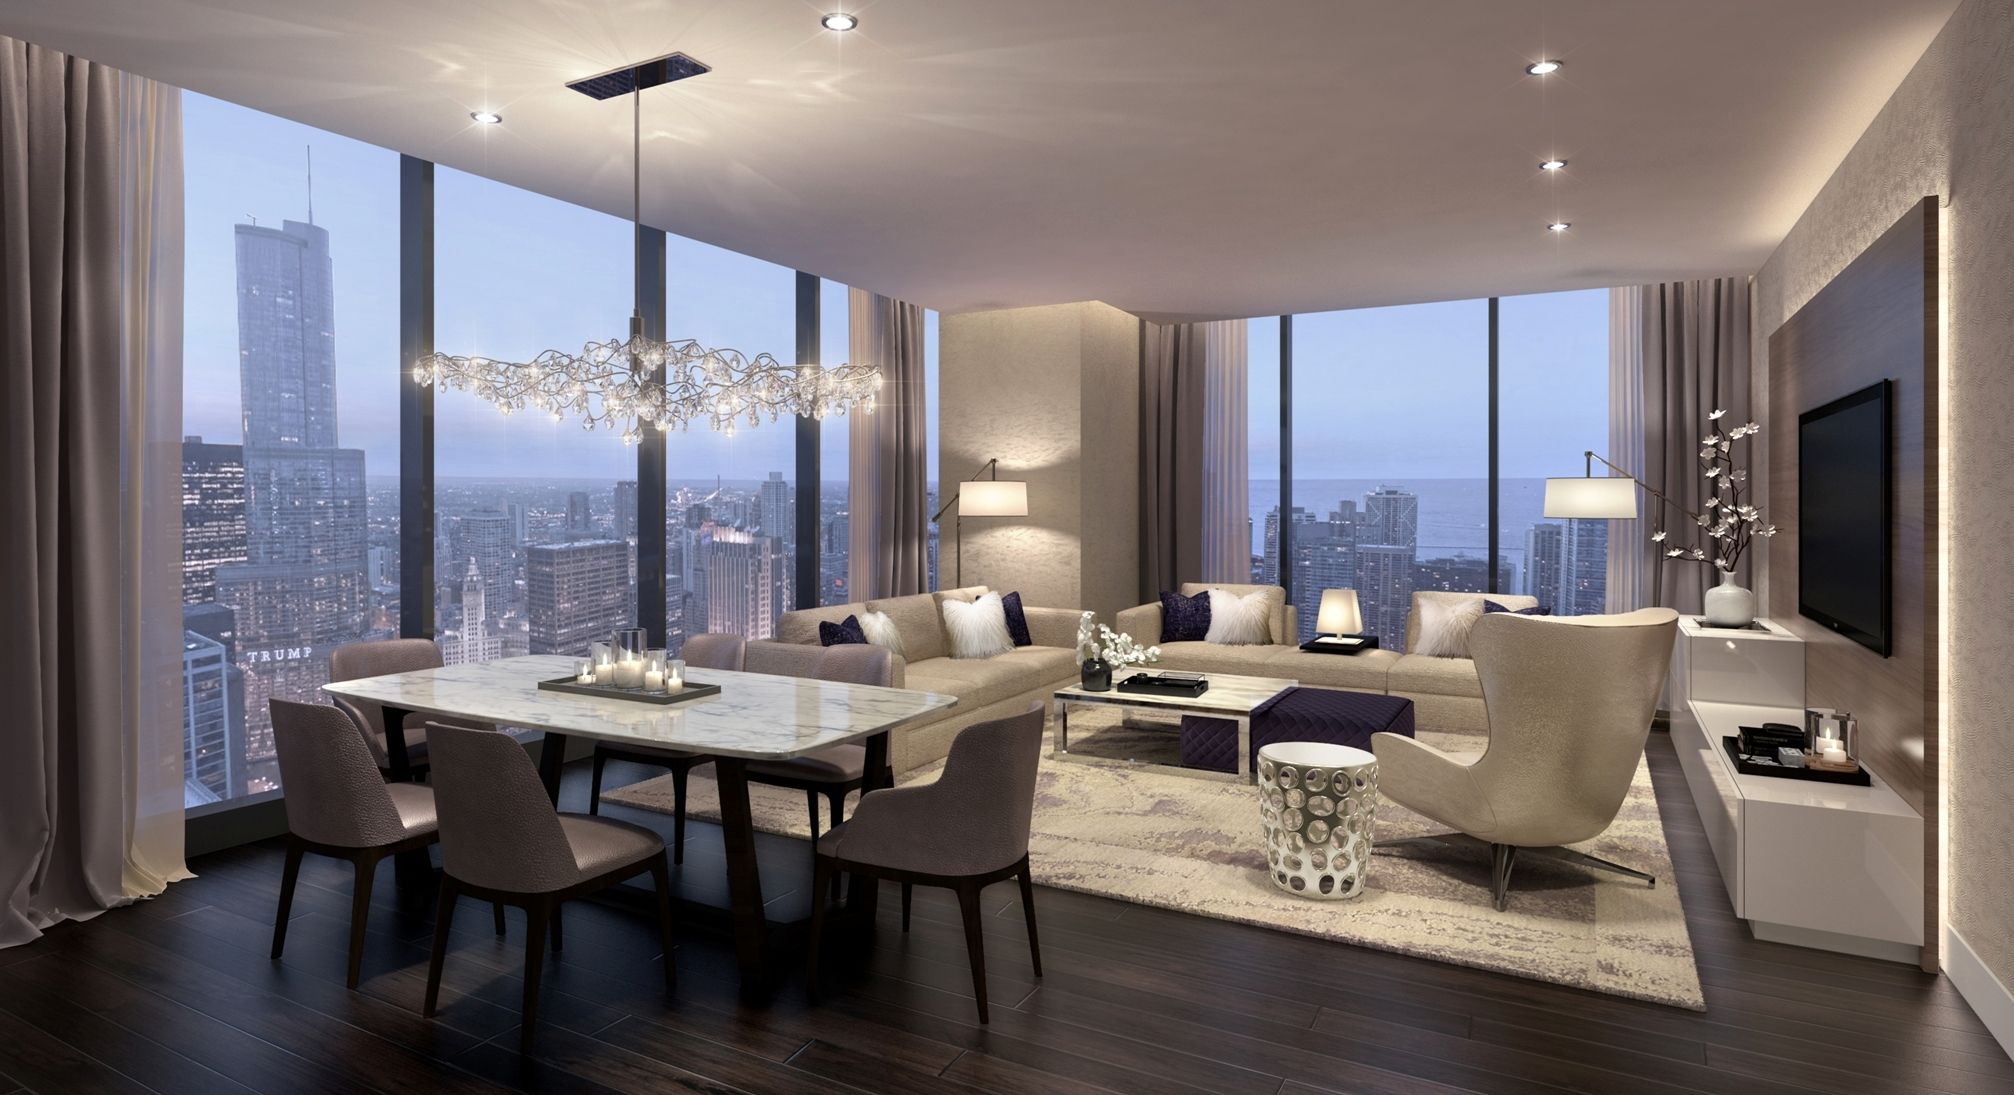 See Condo Interiors Planned At Jeanne Gang S New Chicago High Rise In Lakeshore East Jpg 2014